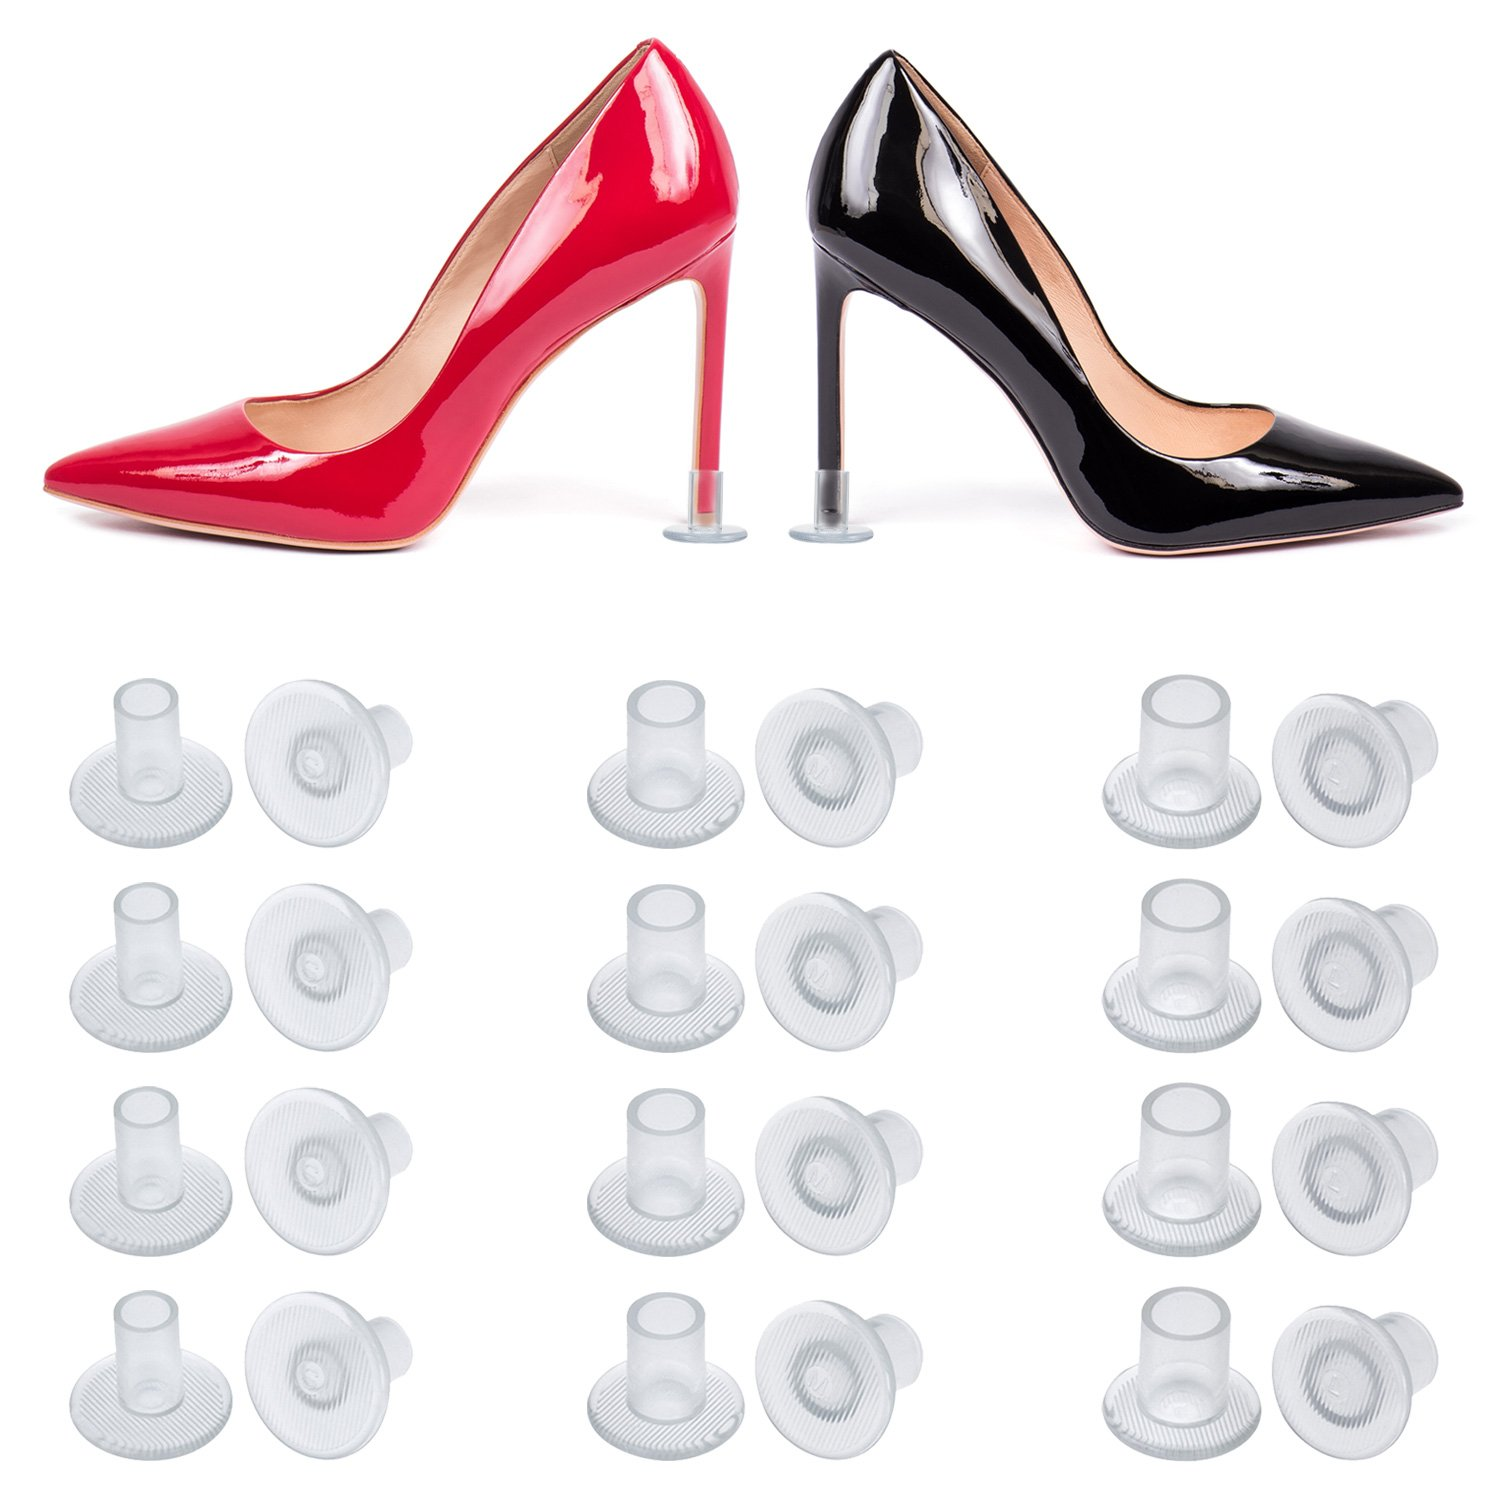 3d39b66b971 Frienda High Heel Protectors Clear Heel Stoppers for Wedding or Outdoor  Events (24 Pairs)